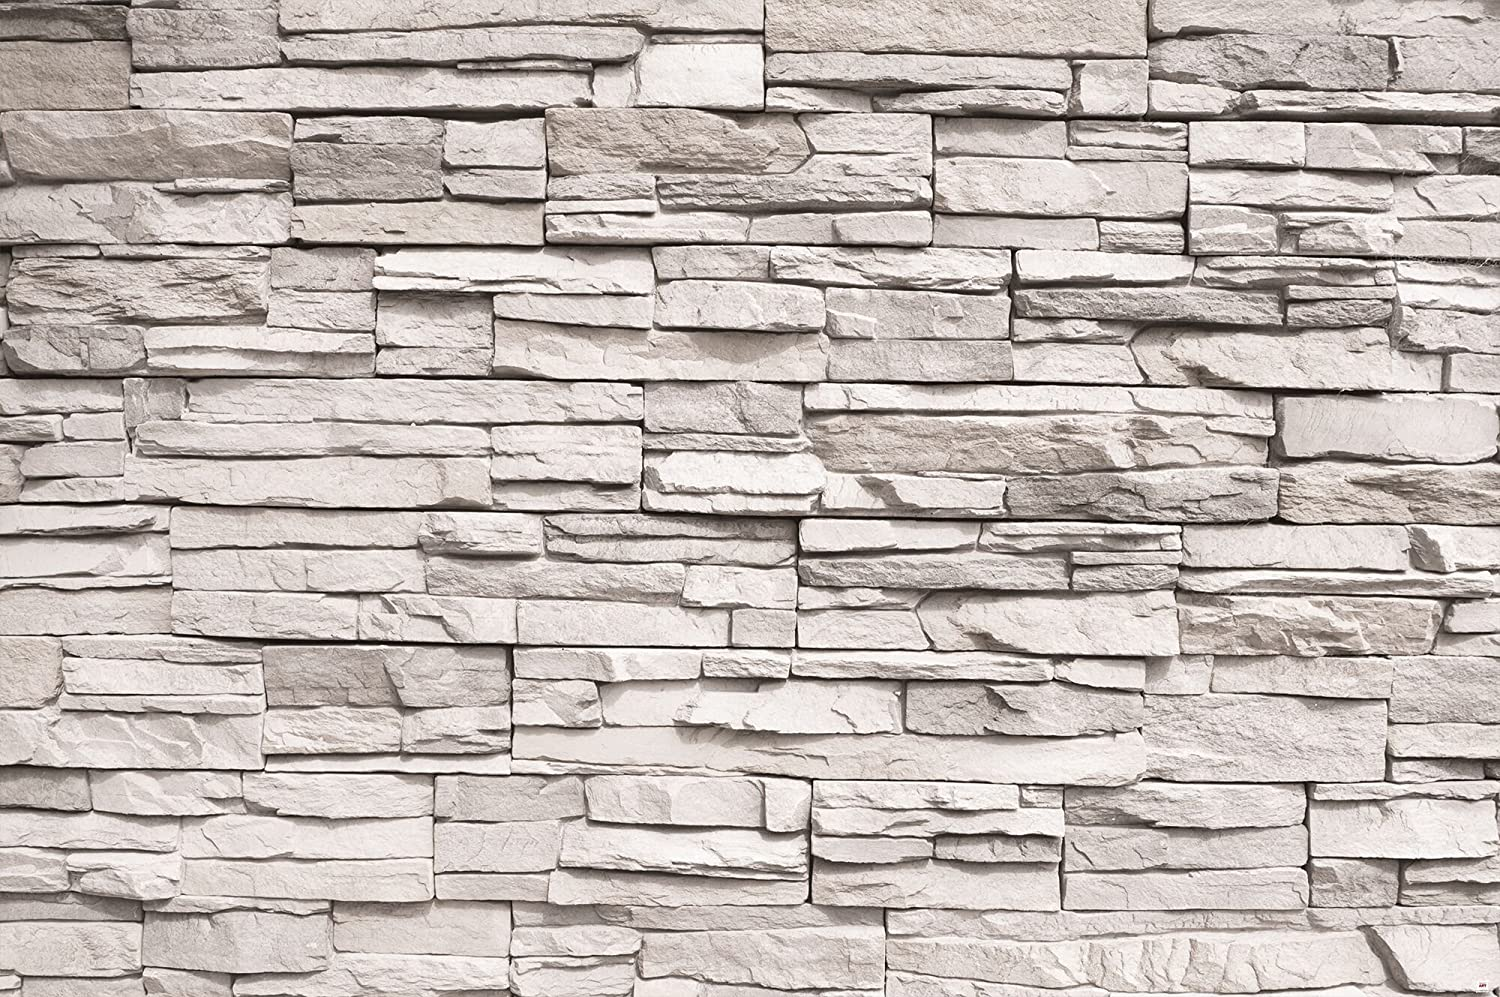 GREAT ART Wallpaper White Stonewall – Wall Decoration Slate Beige Stones 3D Optic Poster Stone Poster Paneling Rock Easy DYI (82.7x55 Inch)